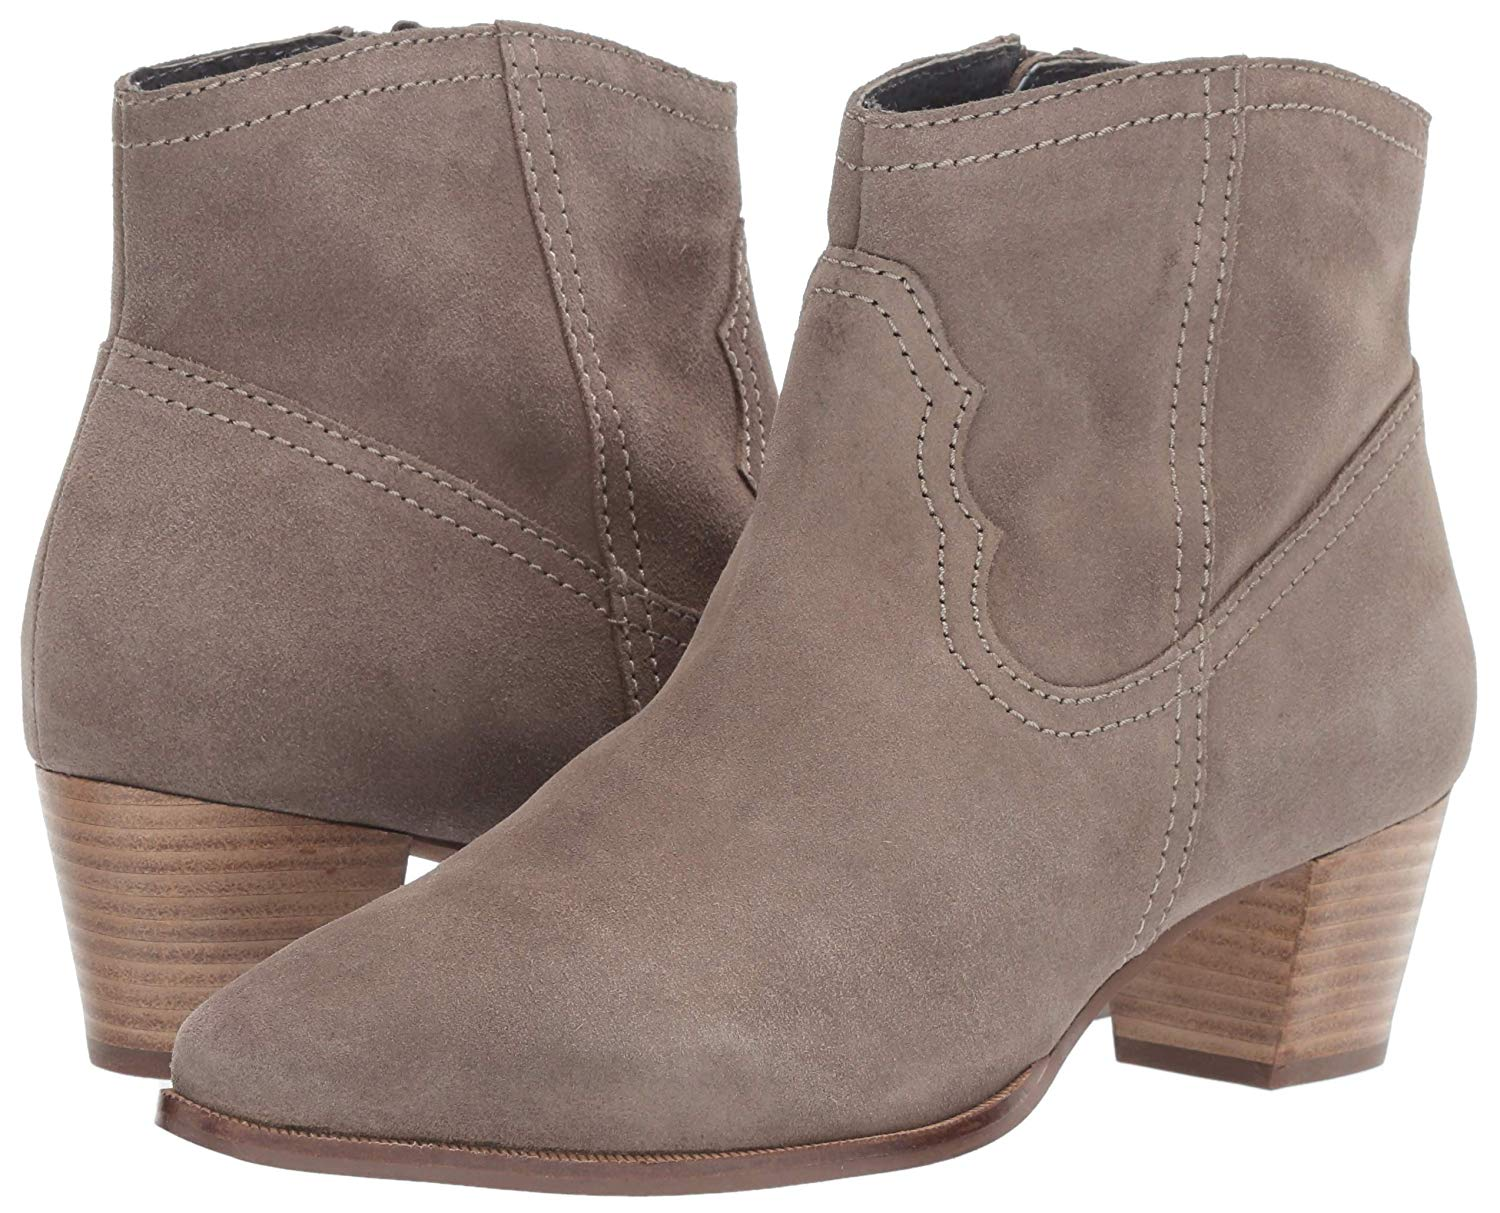 Seychelles Represent Ankle Boot Taupe Suede